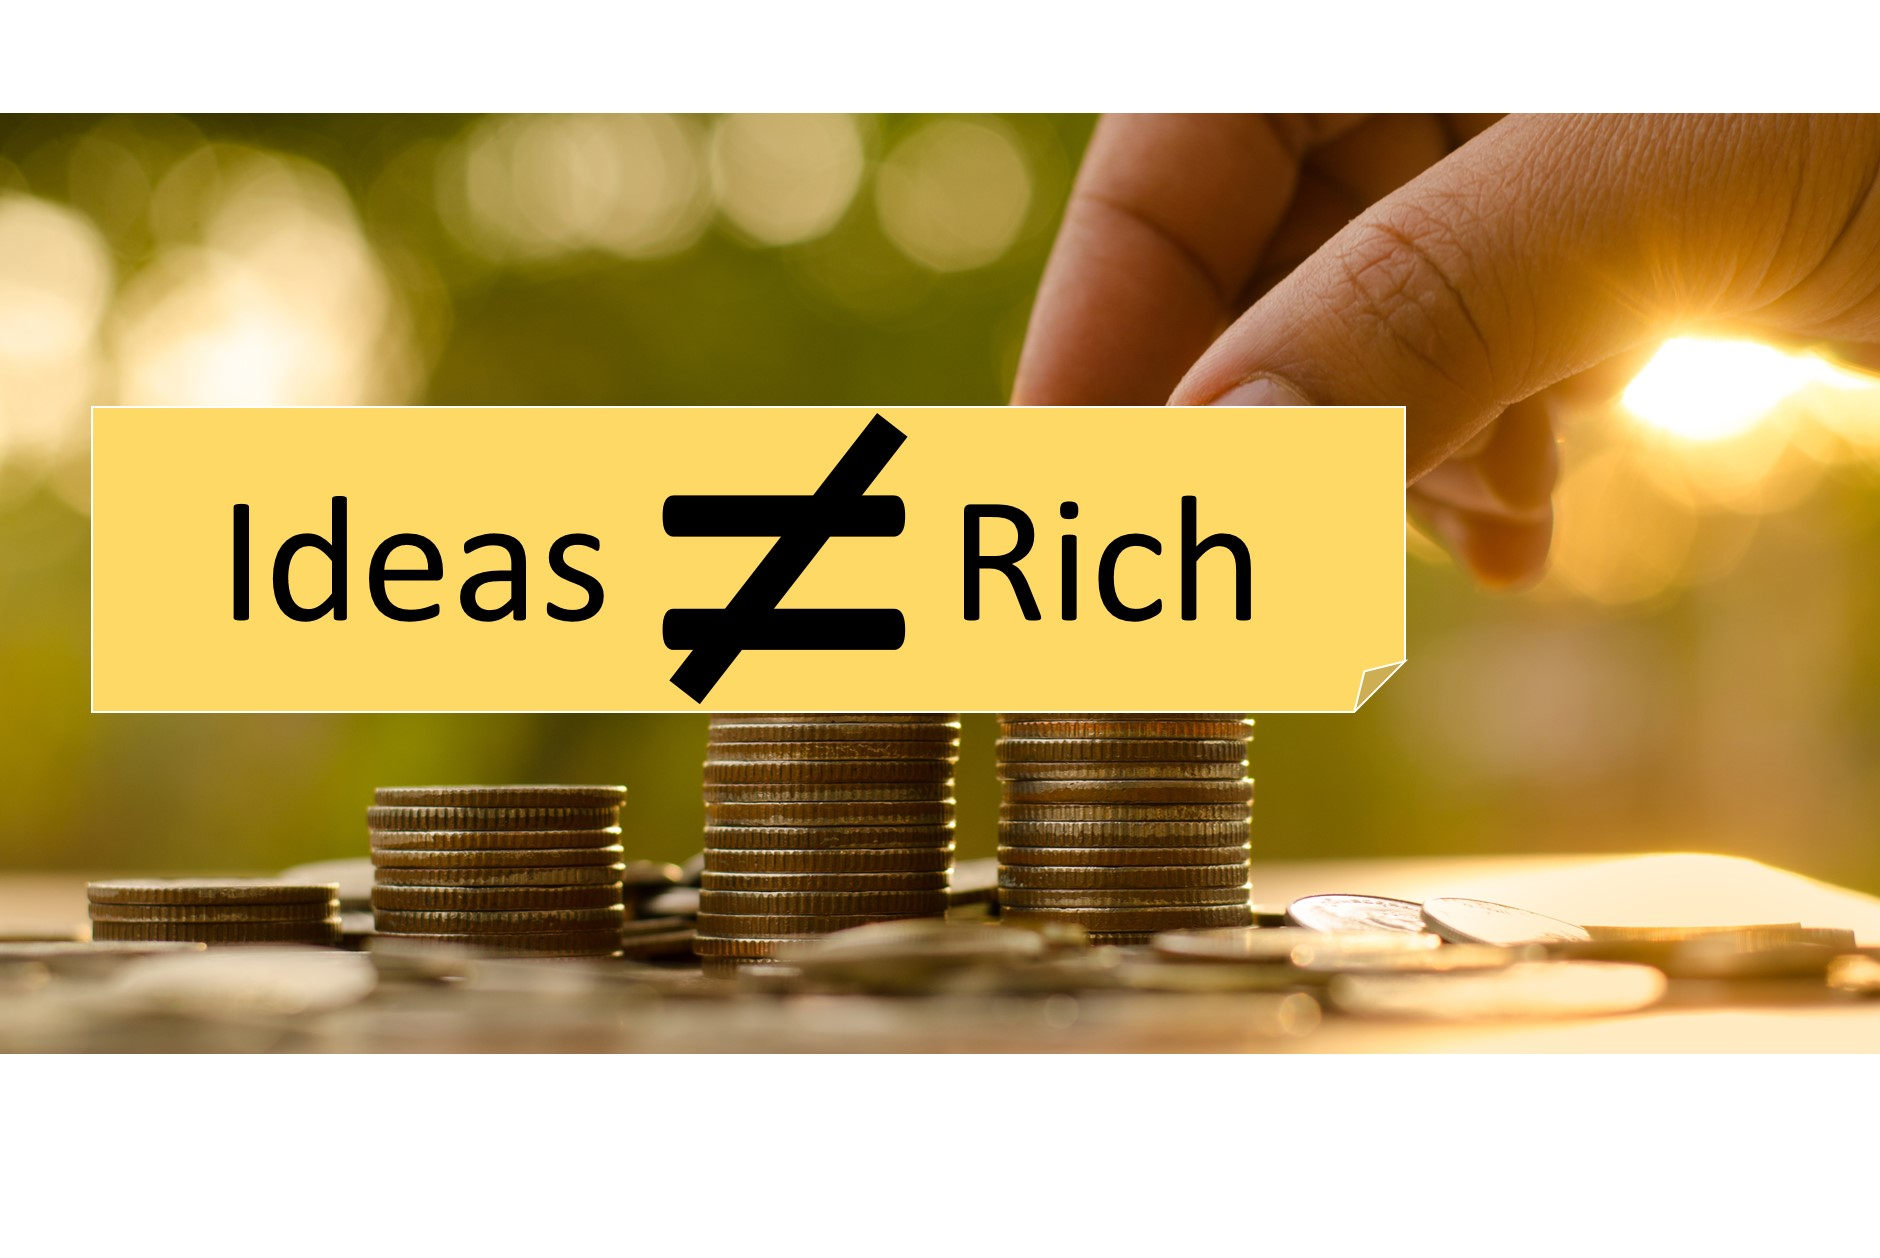 Idea Conversion: Why Ideas Will Not Make You Rich